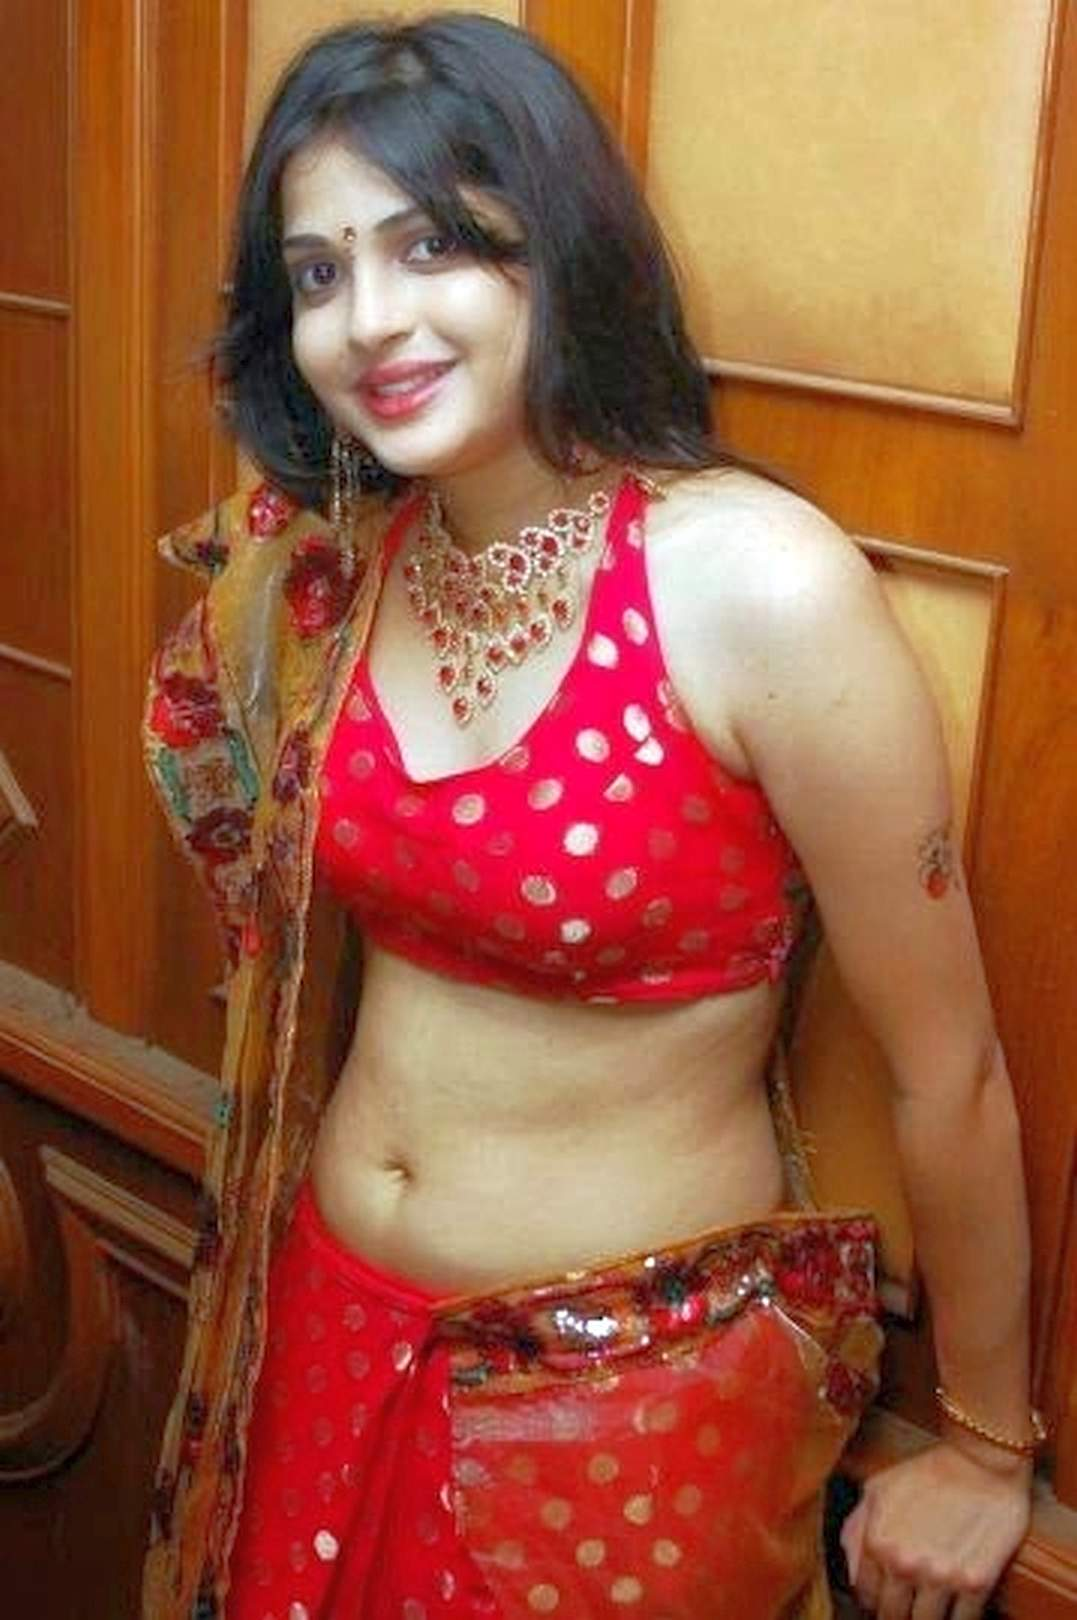 Hot Desi Chicks Real Life  Hot Navel Pics-5234